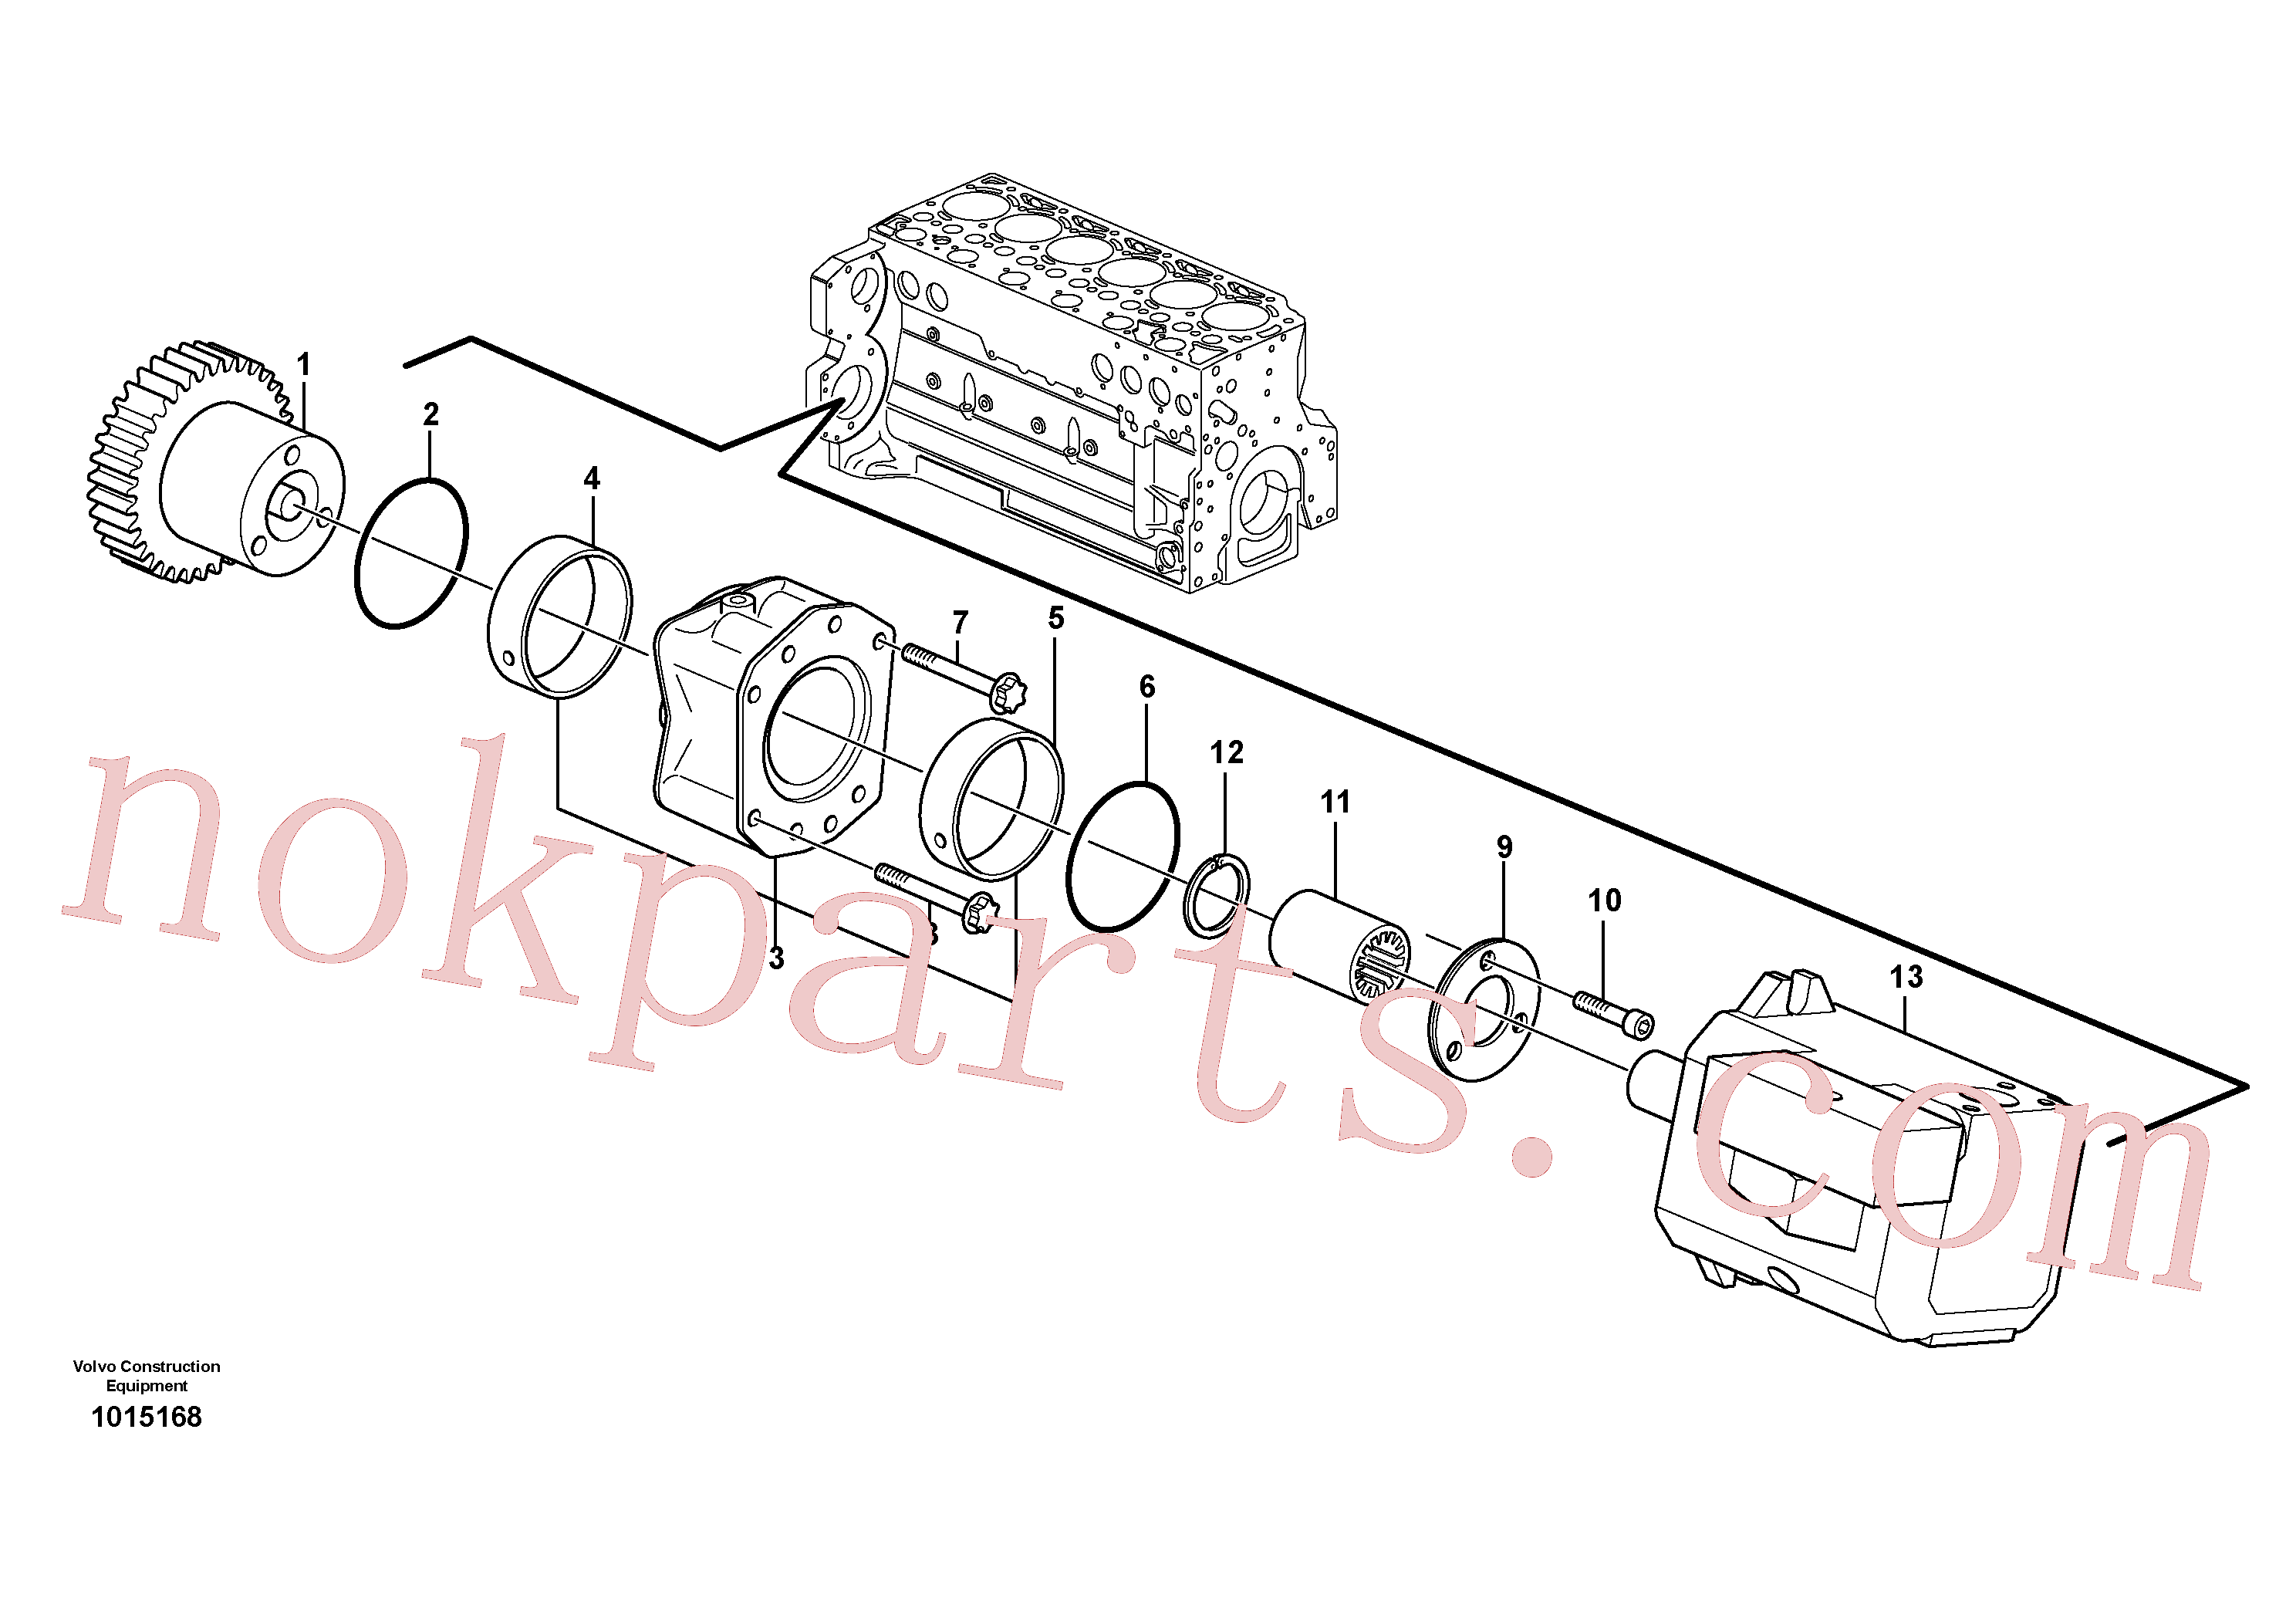 ZM2900655 for Volvo Pump drive power take-off(1015168 assembly)